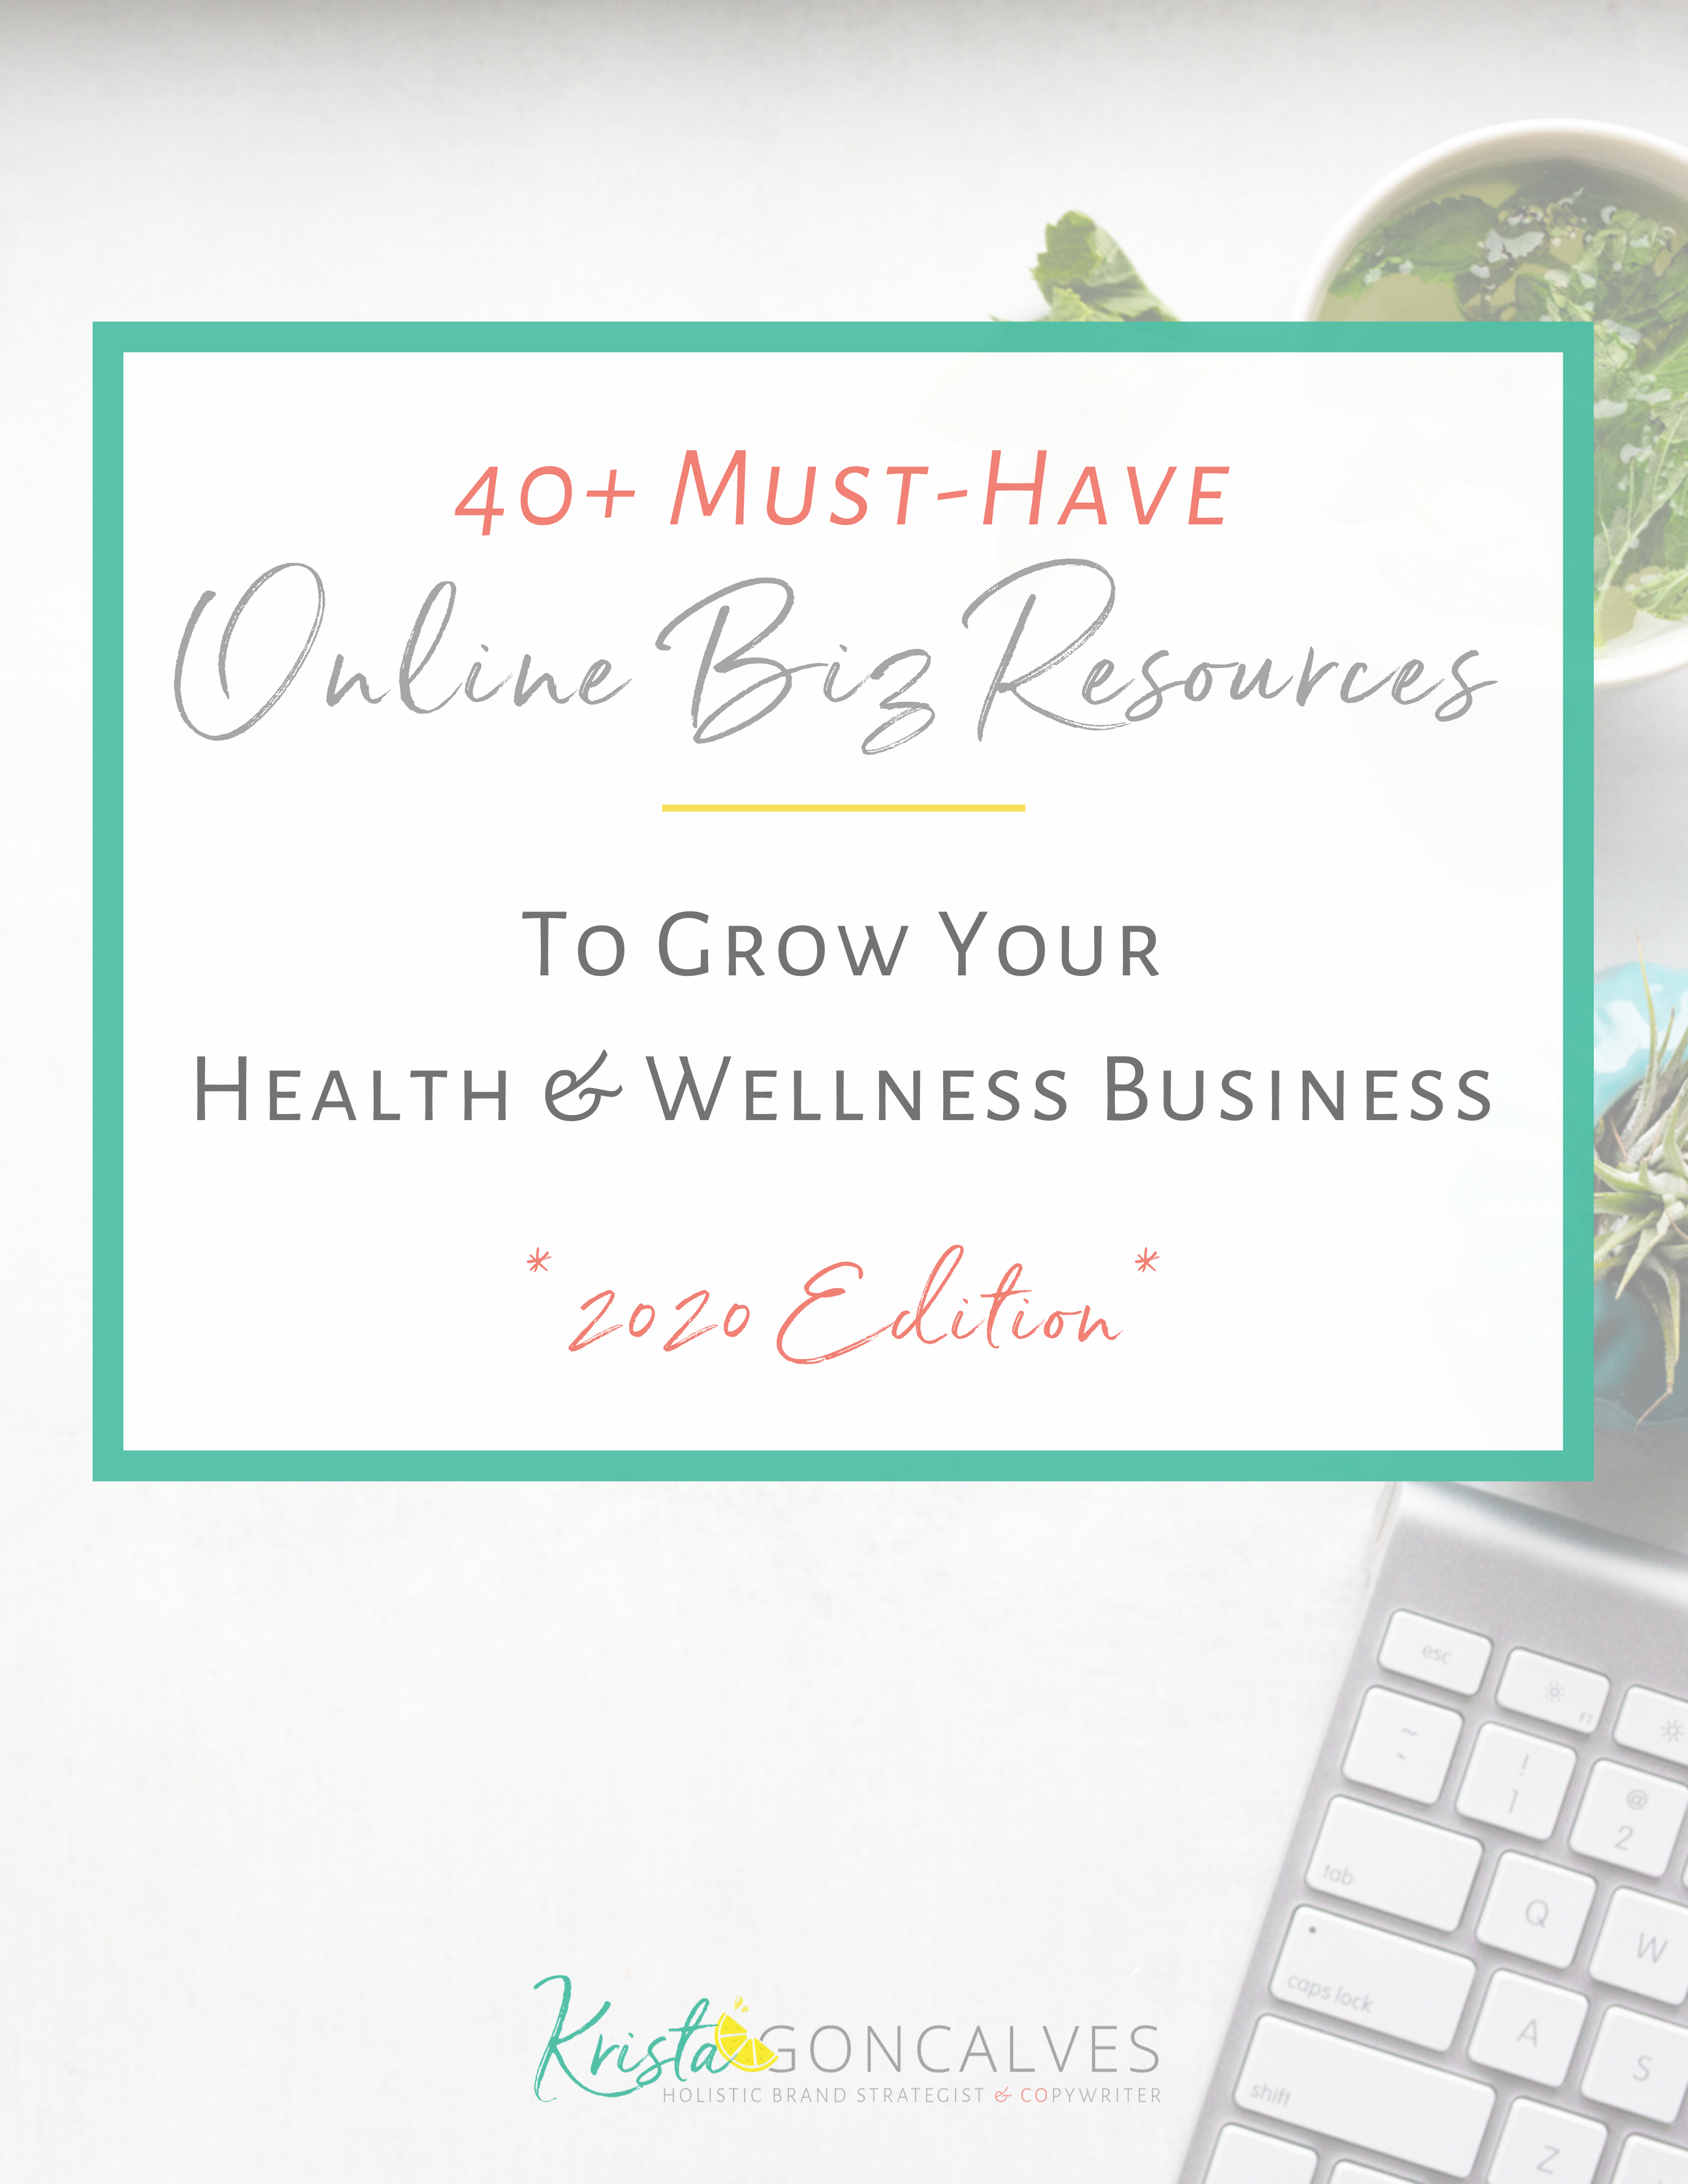 Business Resources for Health Pros & Wellness Entrepreneurs | 2020 Edition | Krista Goncalves Co.